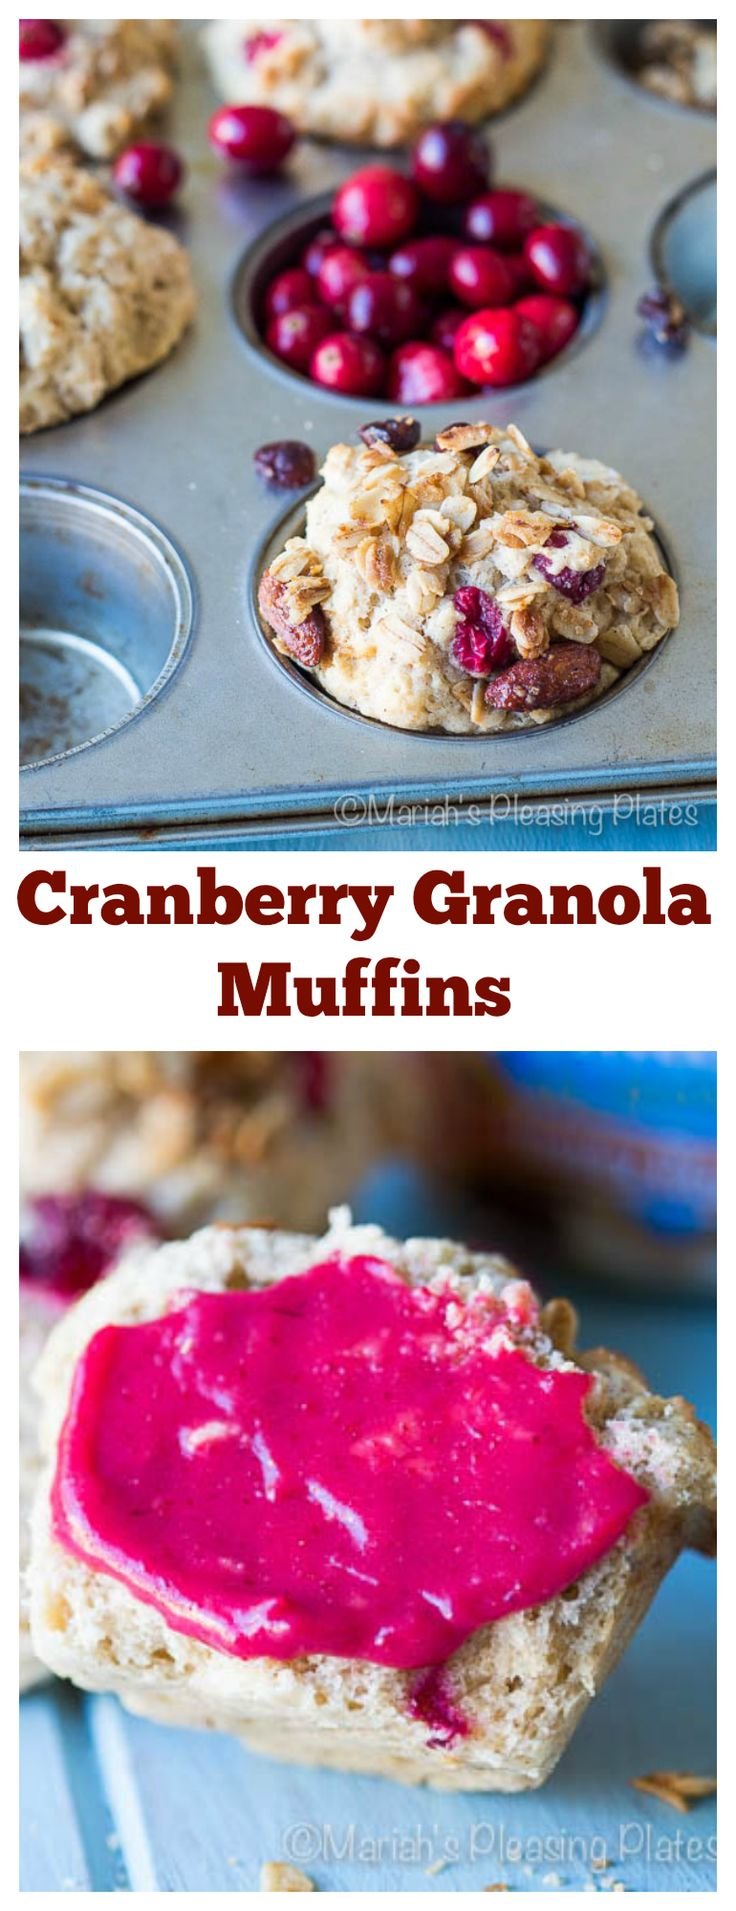 A sweet and tart muffin topped with a homemade nutty granola. These Cranberry Granola Muffins are sure to be the hit of your holiday brunch table.